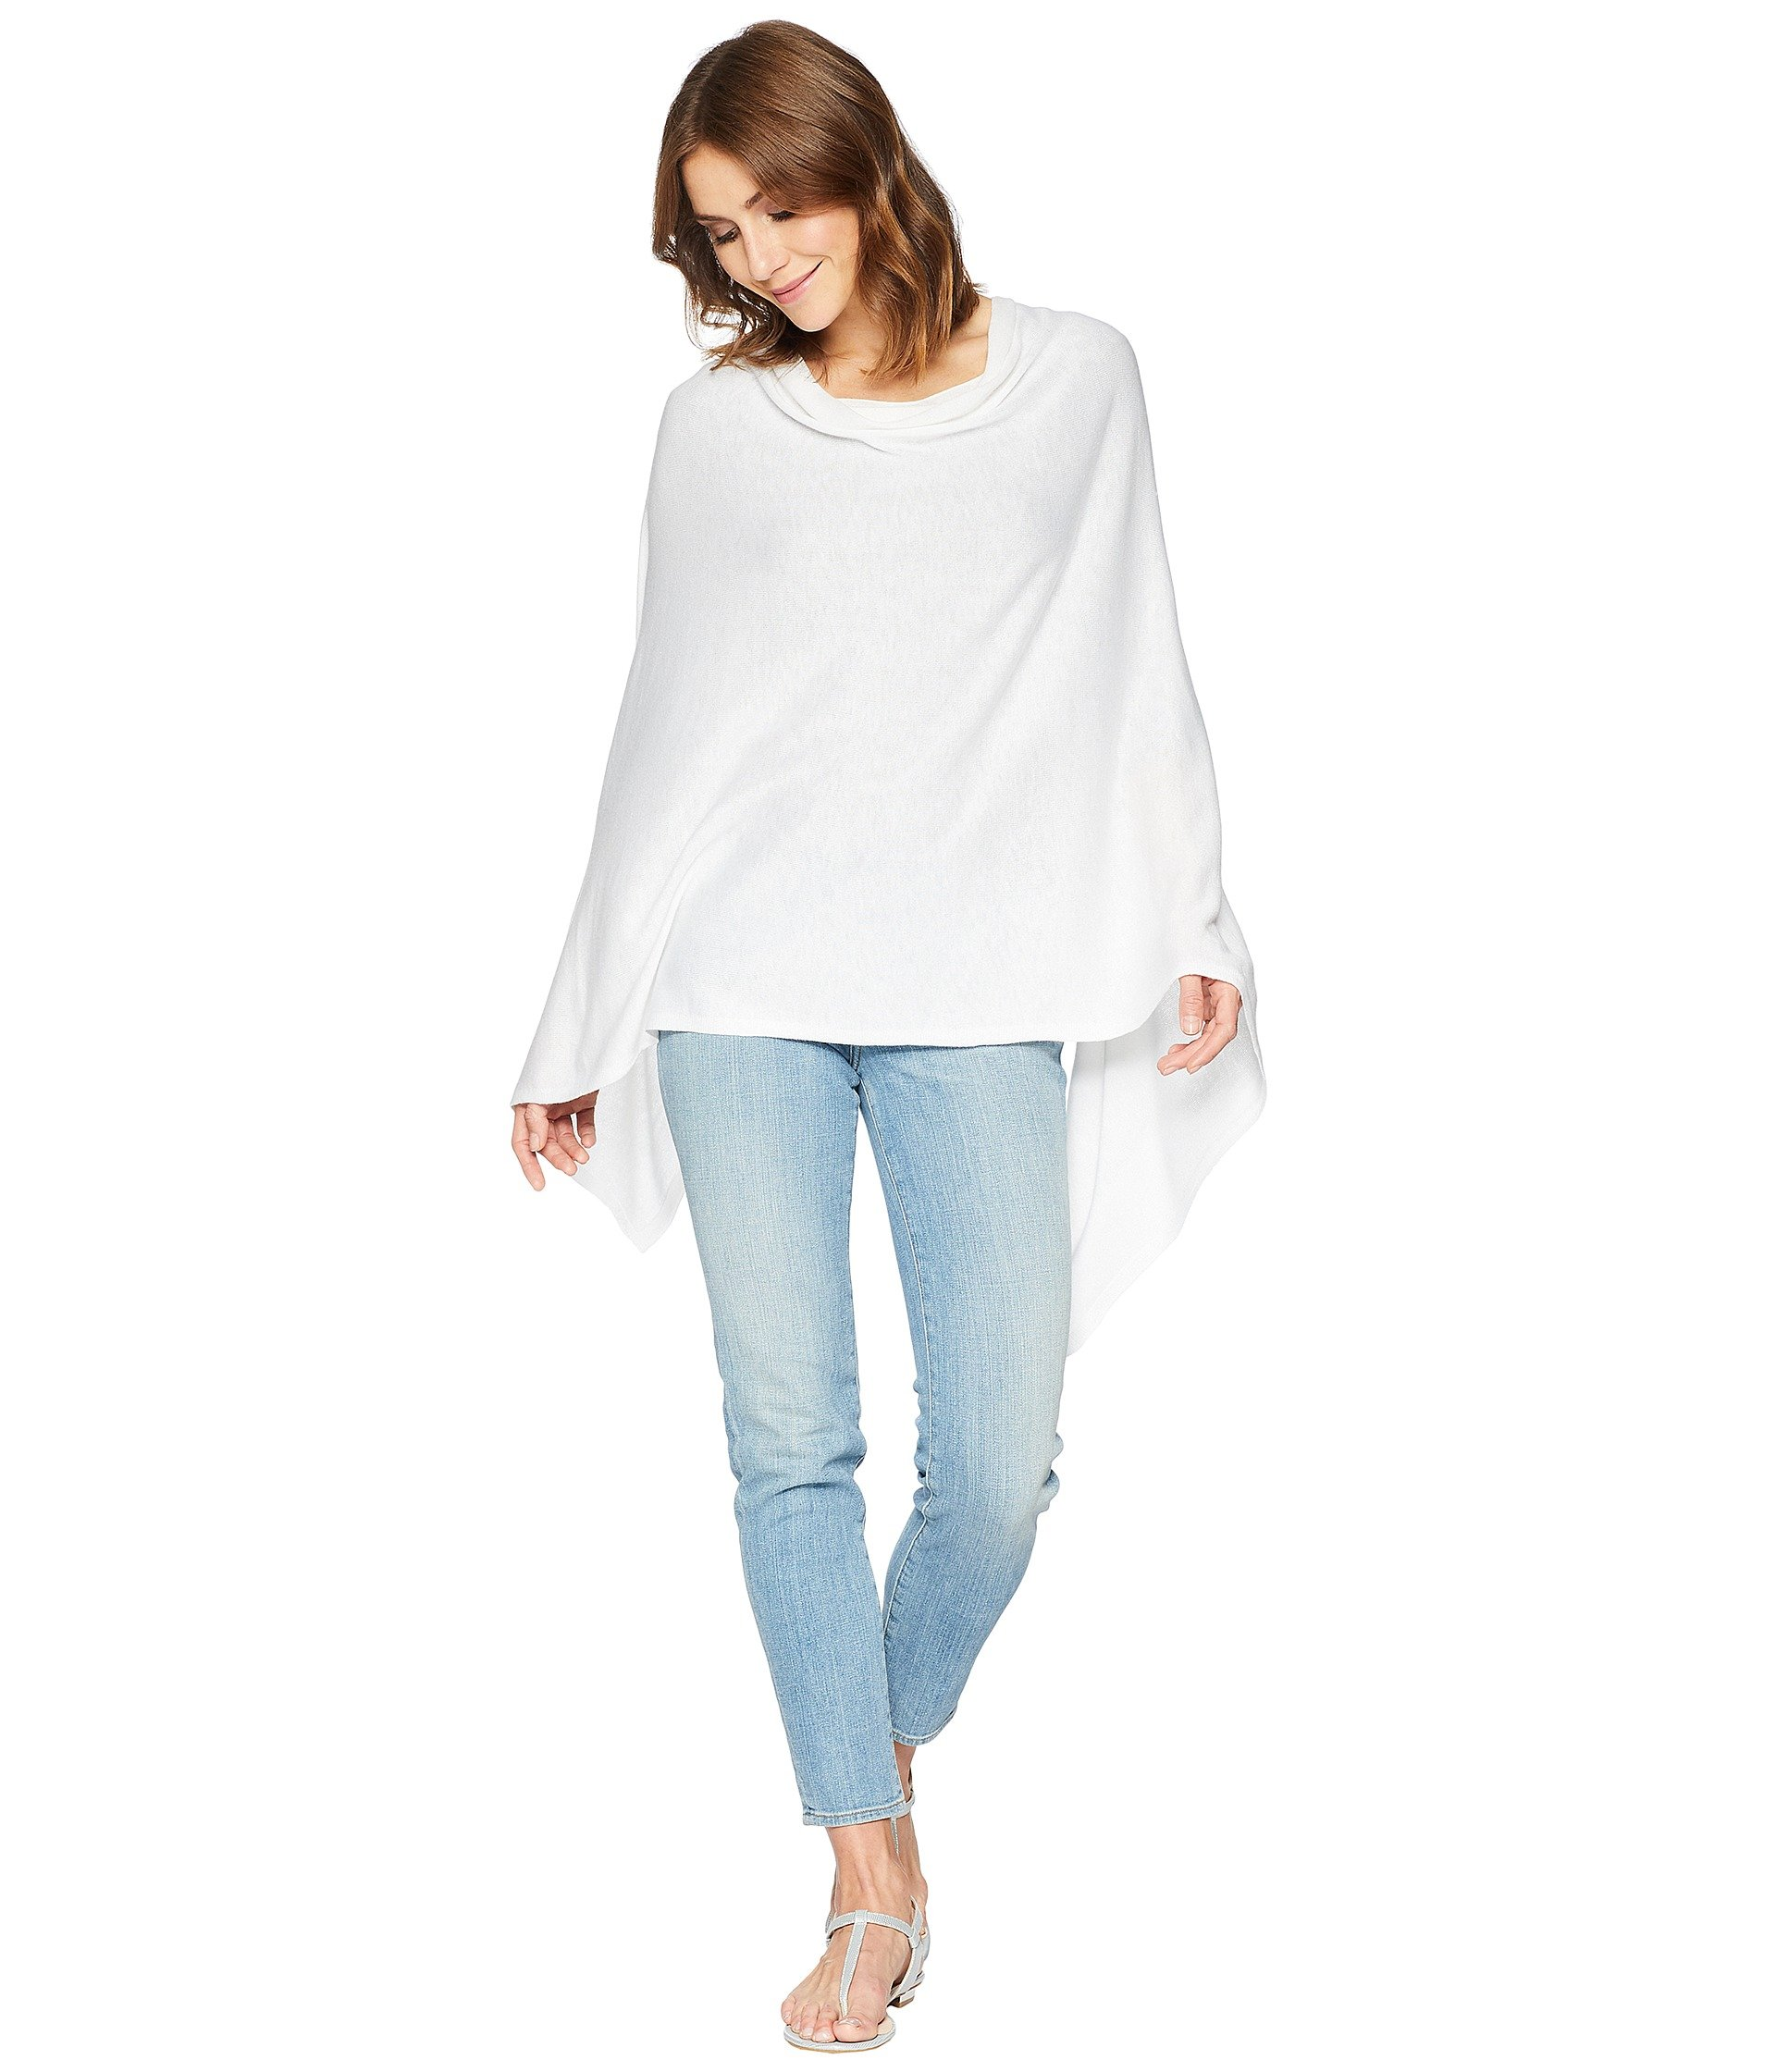 Echo Women's Everyday Topper Ivory, One Size